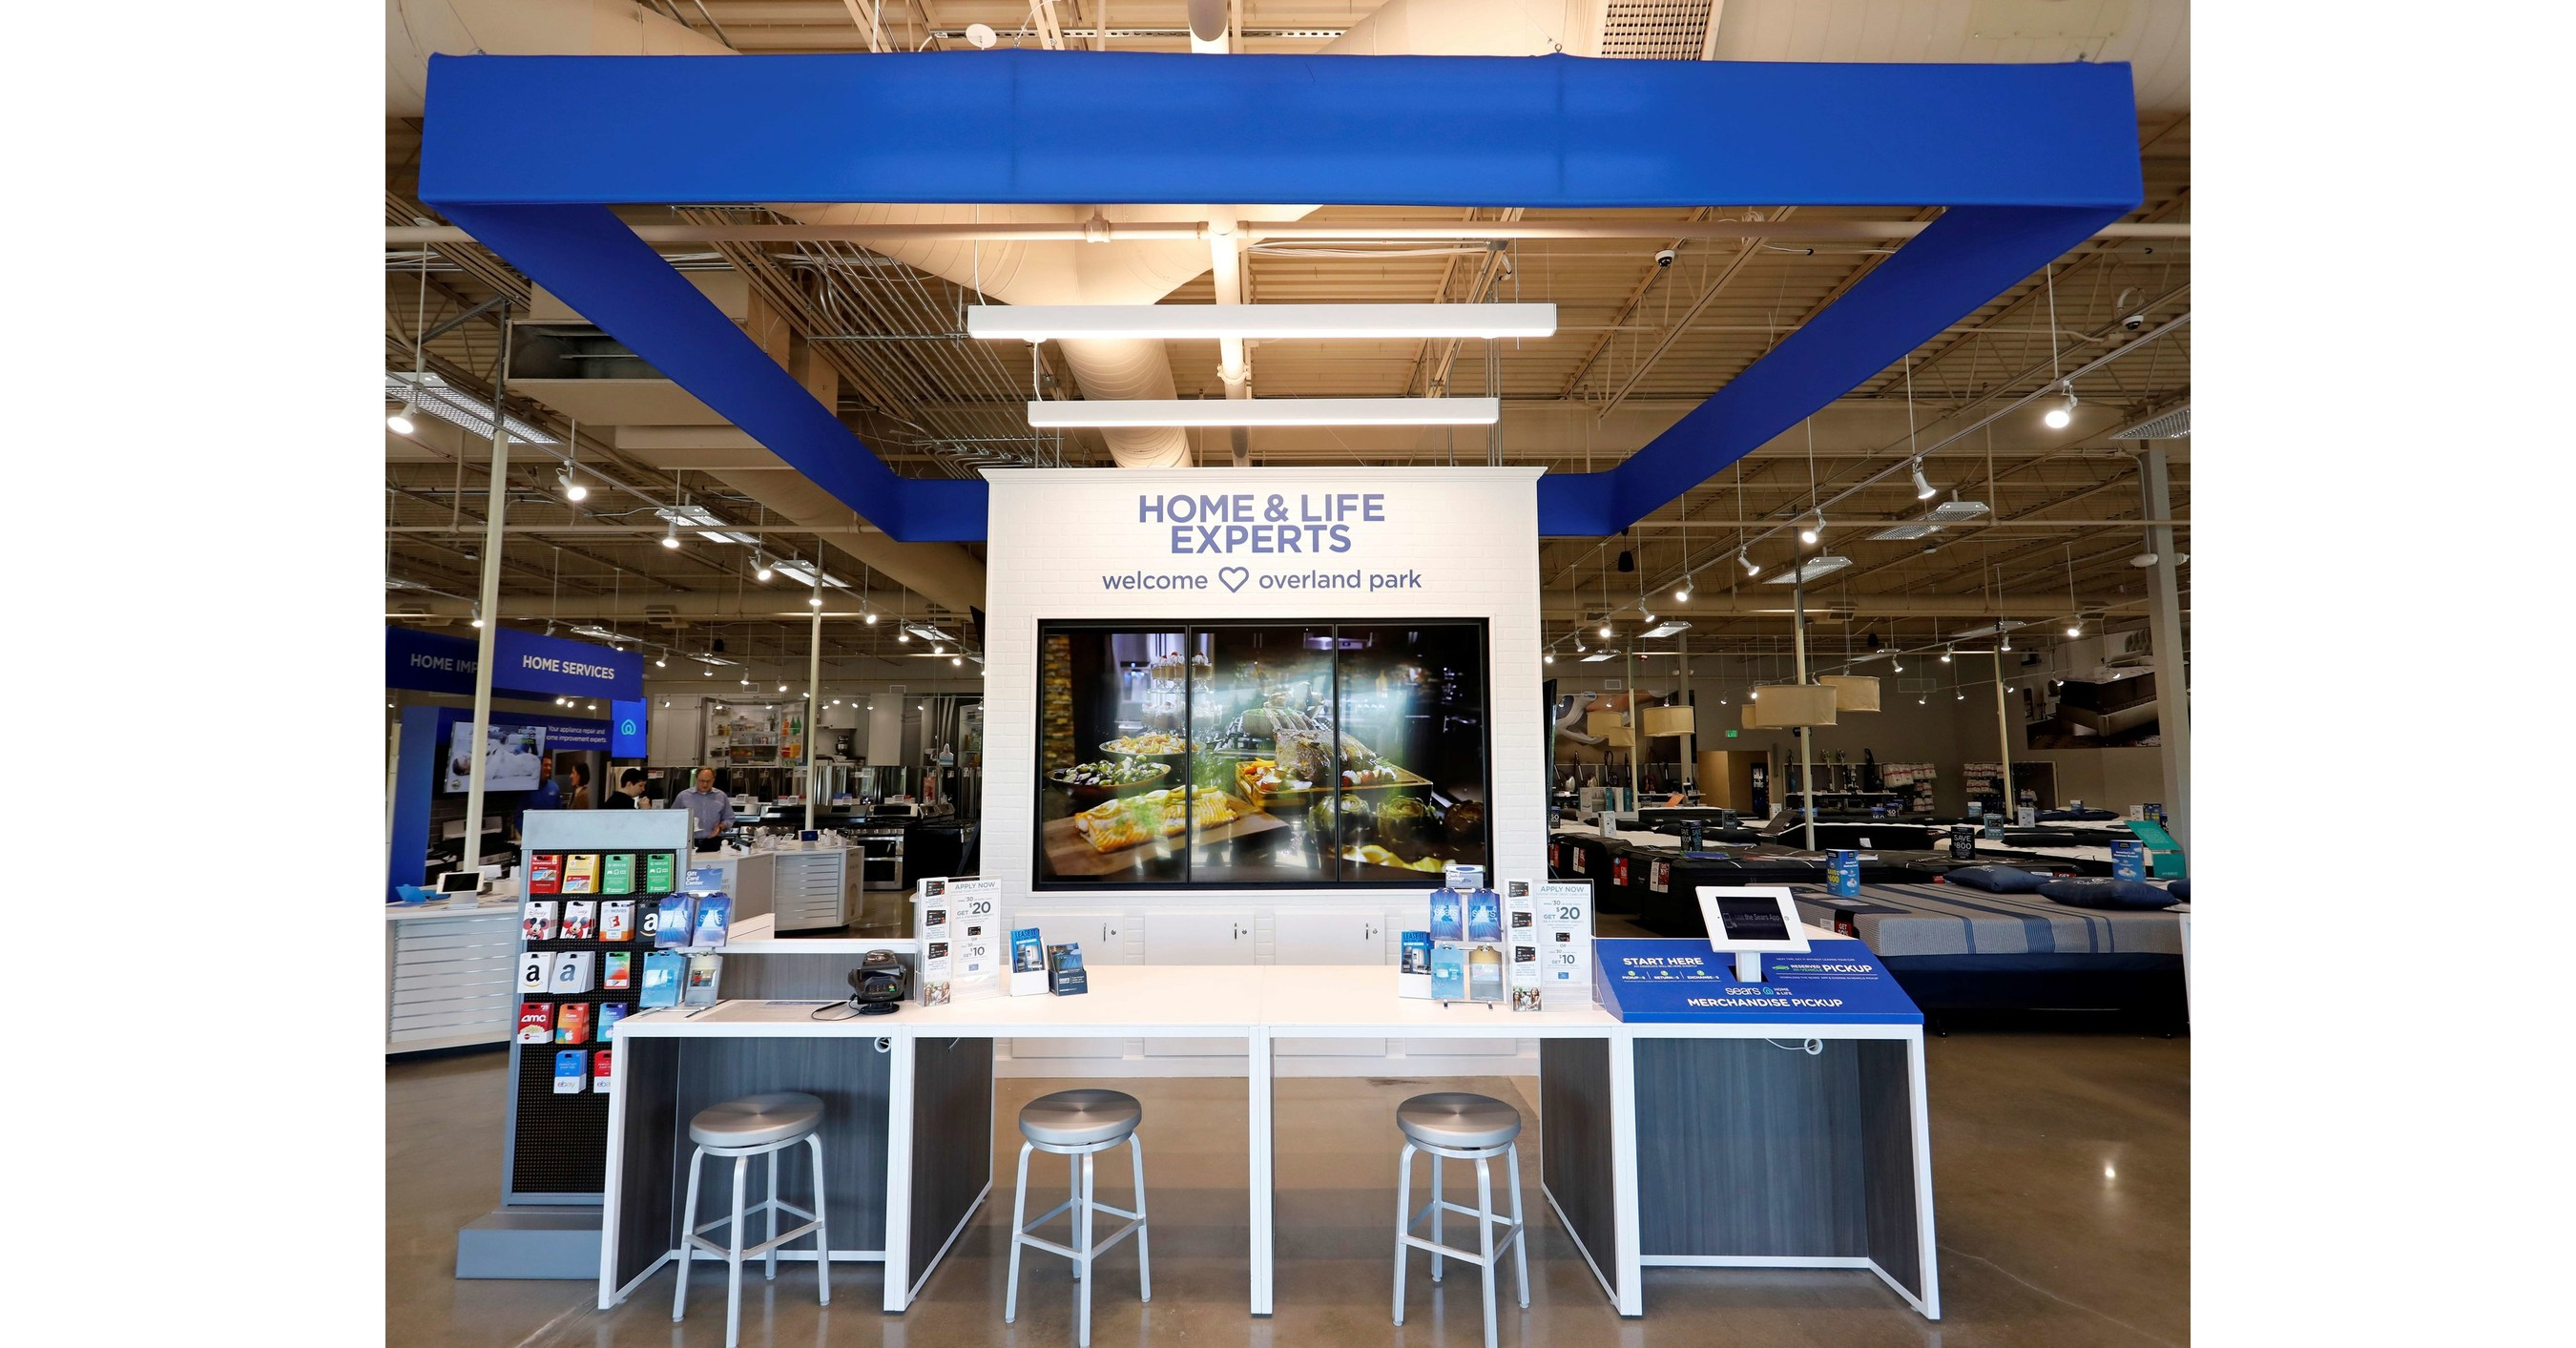 New Sears Home & Life Store Opens in Overland Park